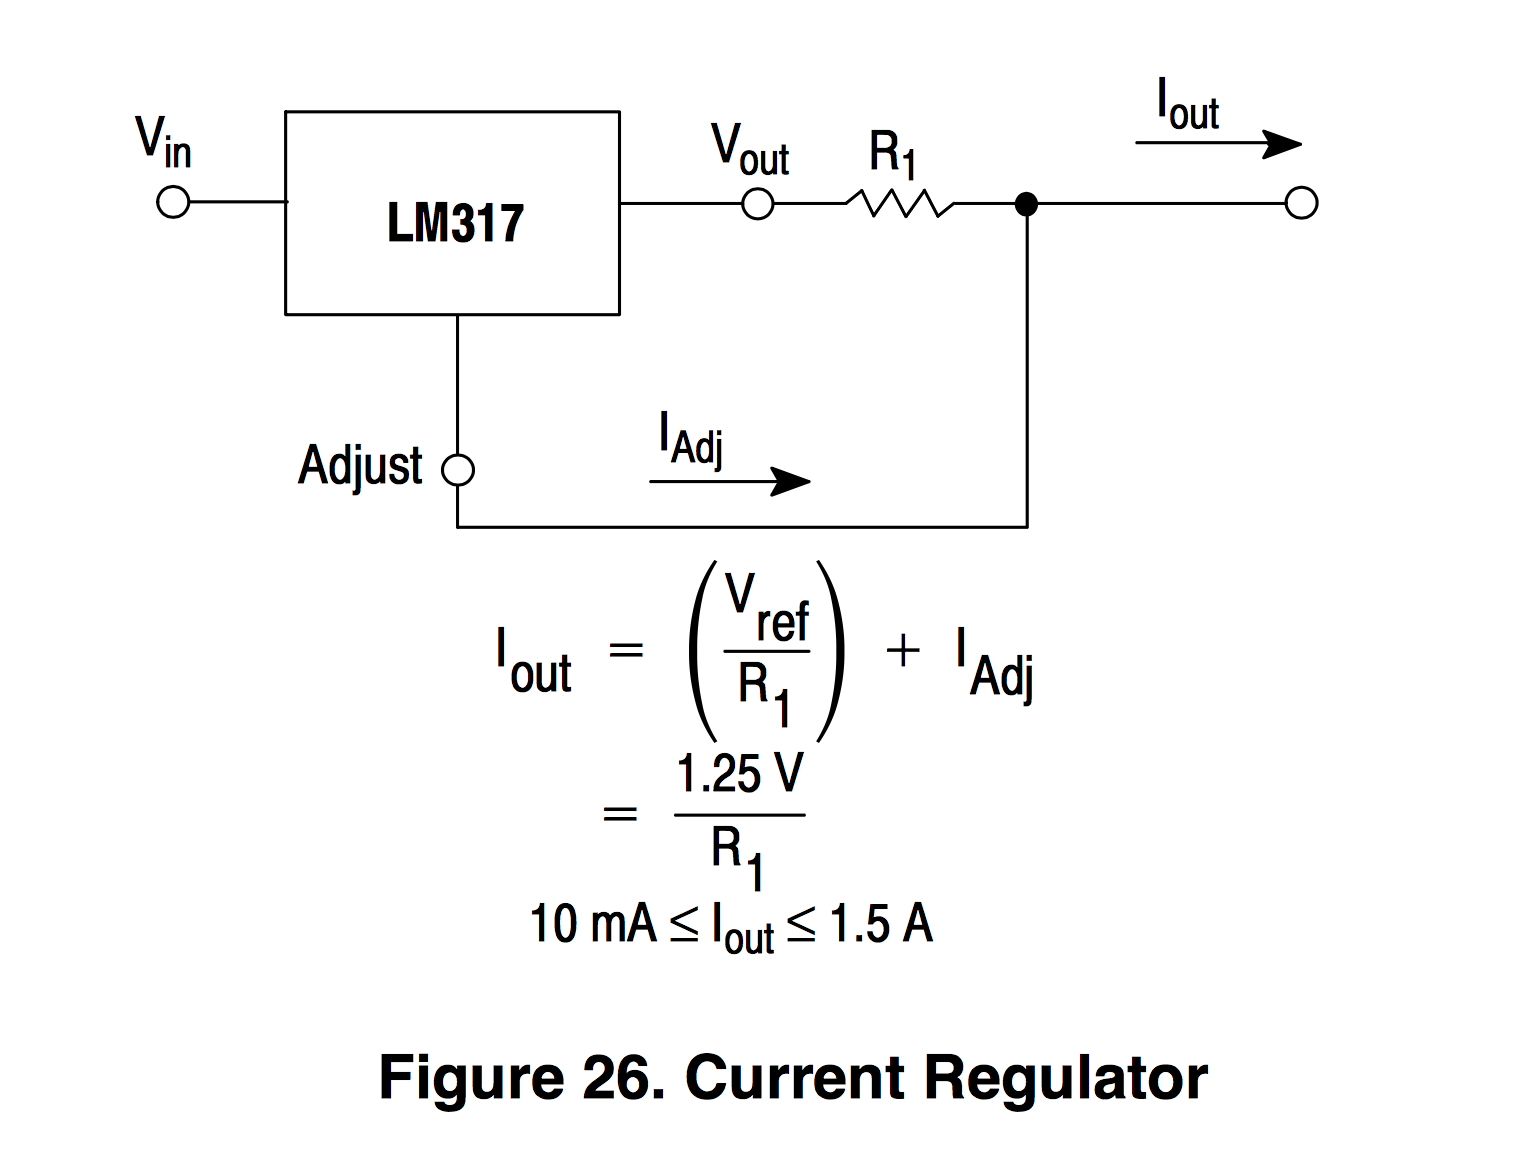 Voltage Regulators Revisted Lm317m 7812 Mcp170x Mic5219 And Icl7660 Regulator Adjustable Explanation Circuit Electronic Circuits The Variable Linear Was Covered Previously In Surface Mount Electronics For Hobbyists Easier Than You Think